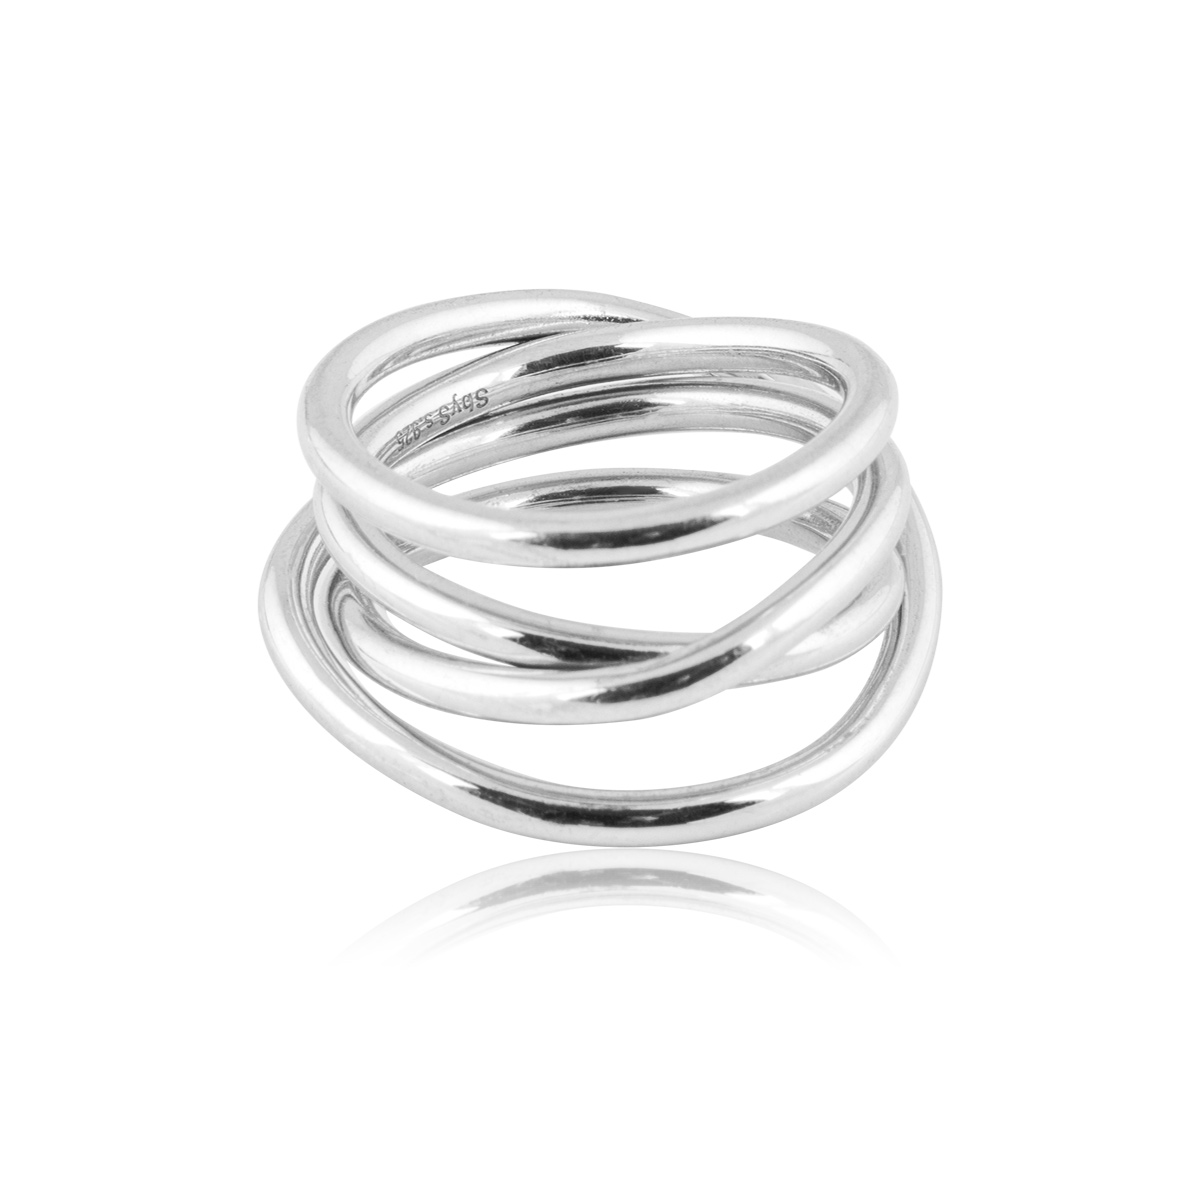 Chaos_ring_silverpla_terad_ma_ssing_1190_sophie_by_sophie